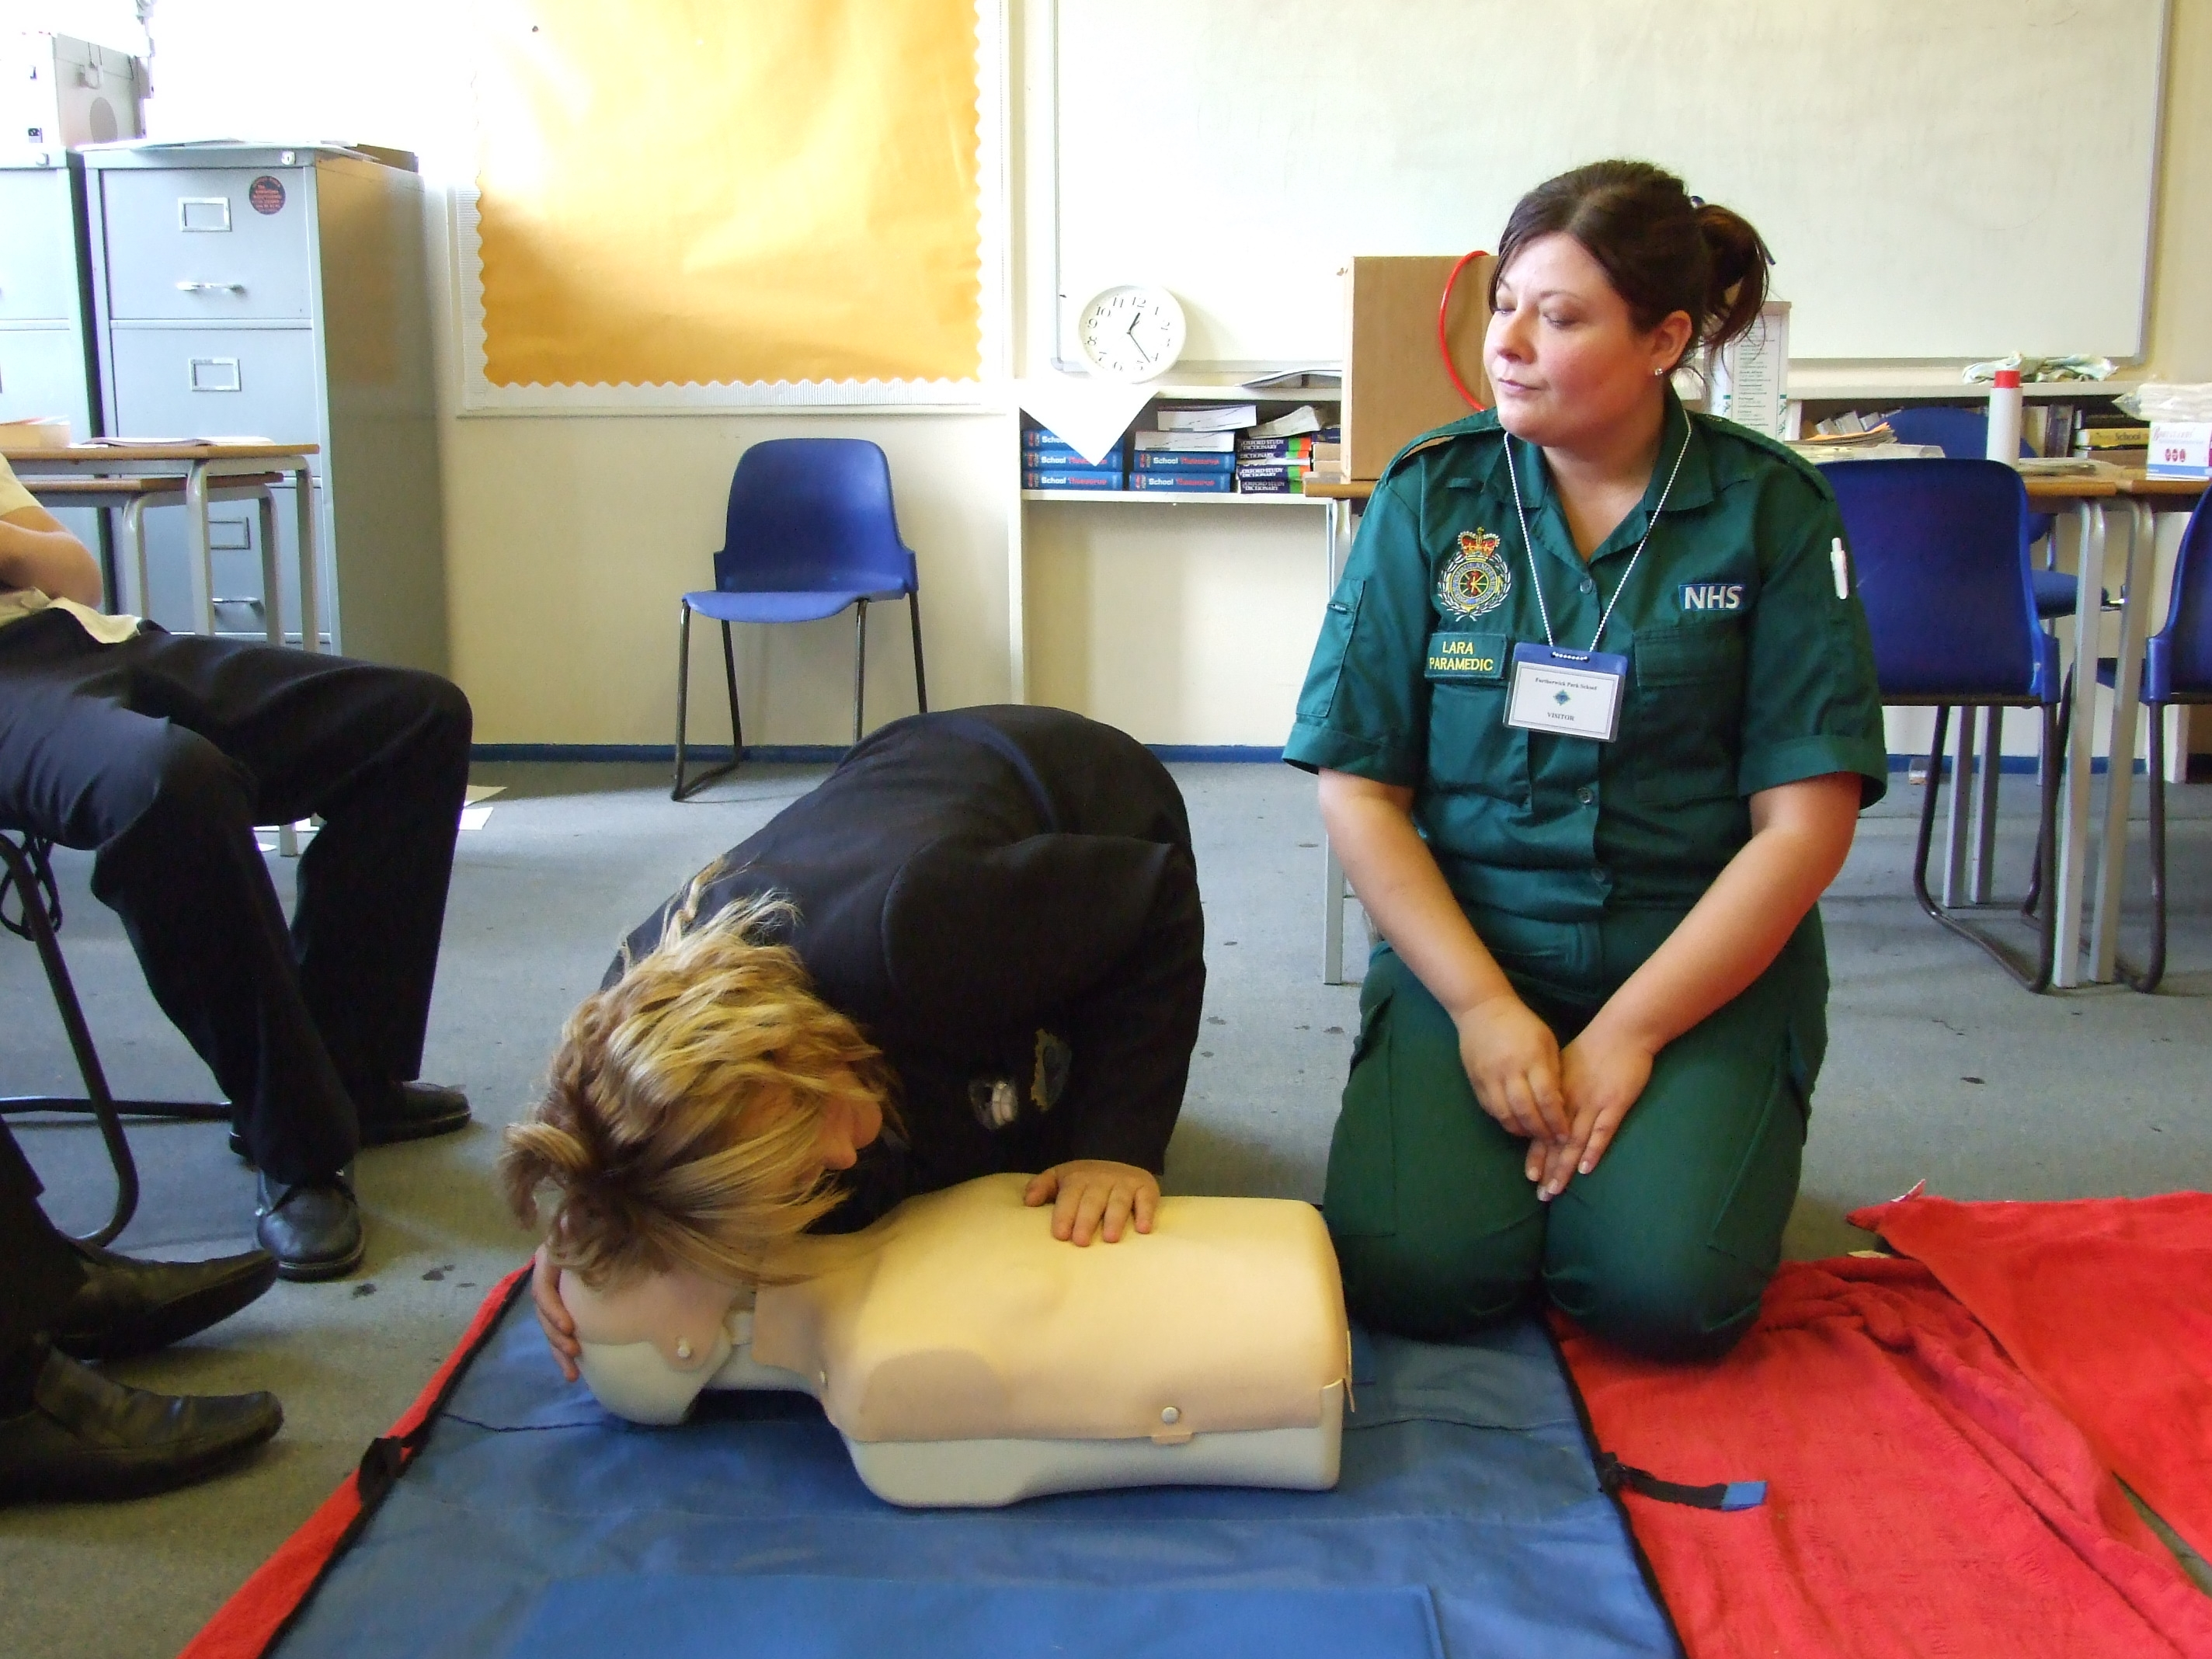 Pupils get first aid training